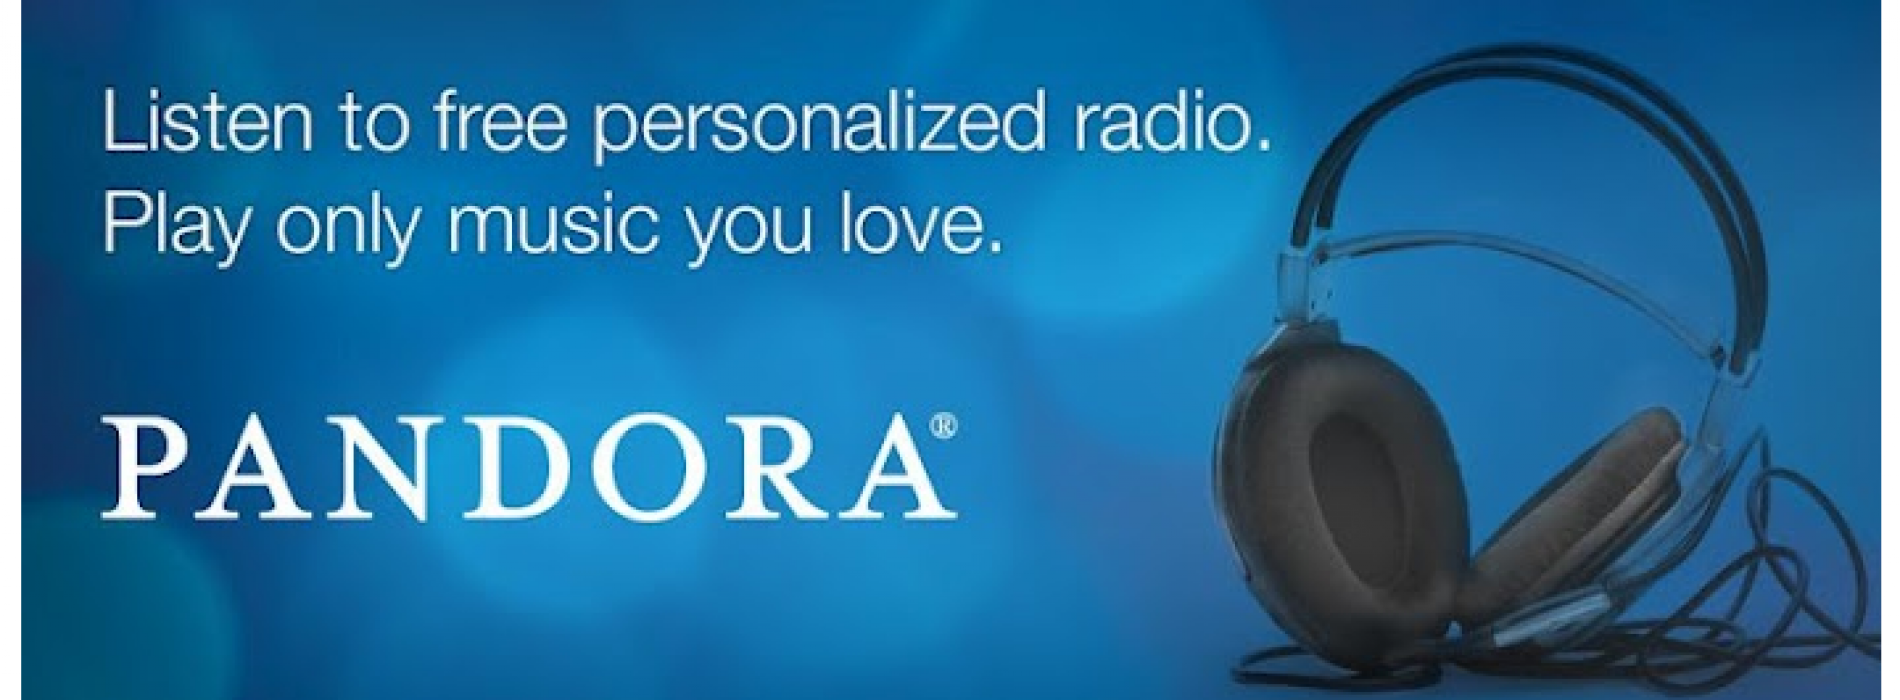 Pandora One rate changes to take effect in May